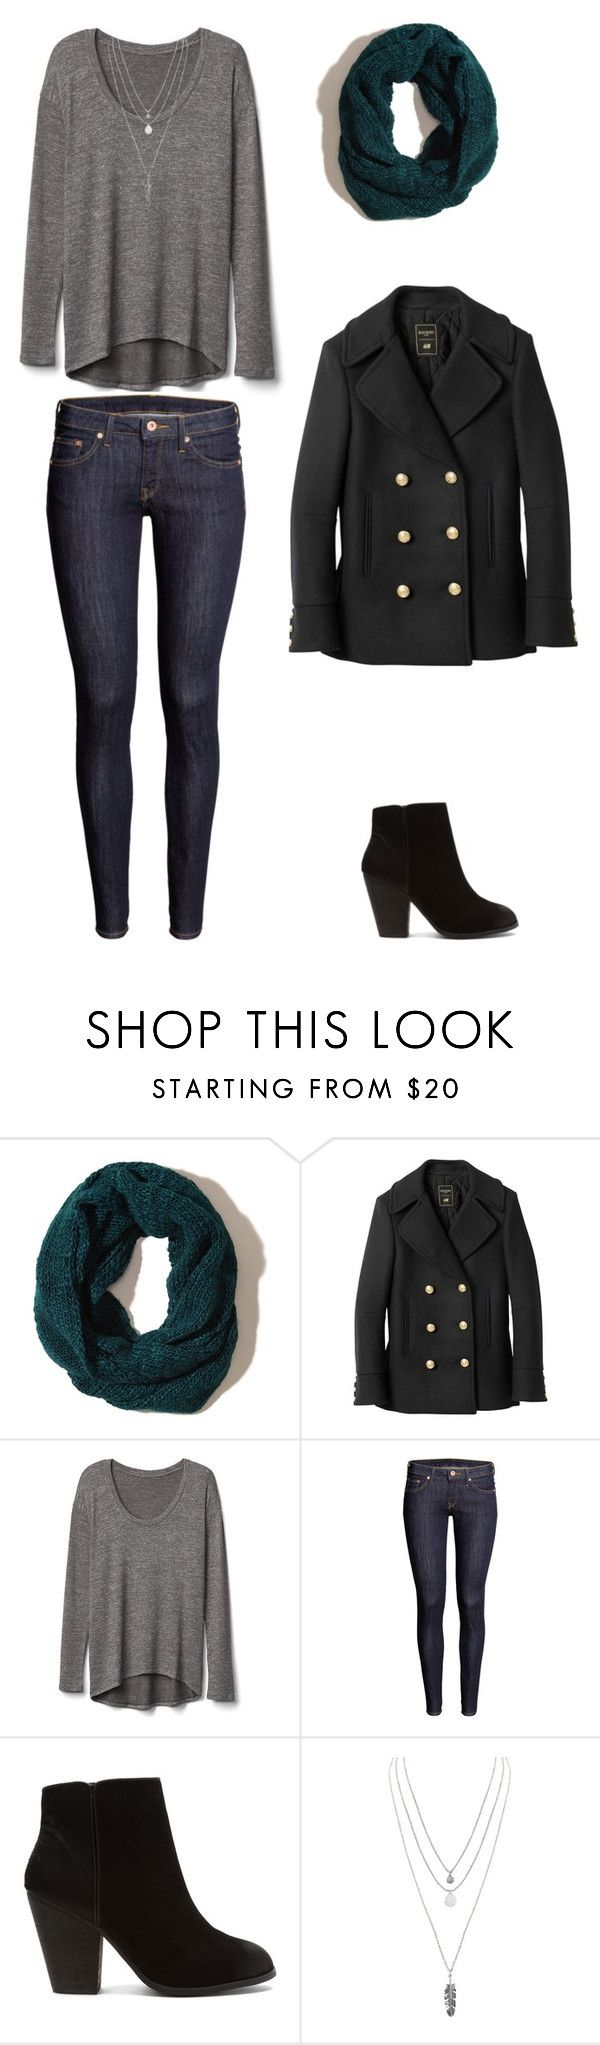 """Winter Outting"" by winchestergirl188 on Polyvore featuring Hollister Co., Balmain, Gap, H&M, Report and Humble Chic"